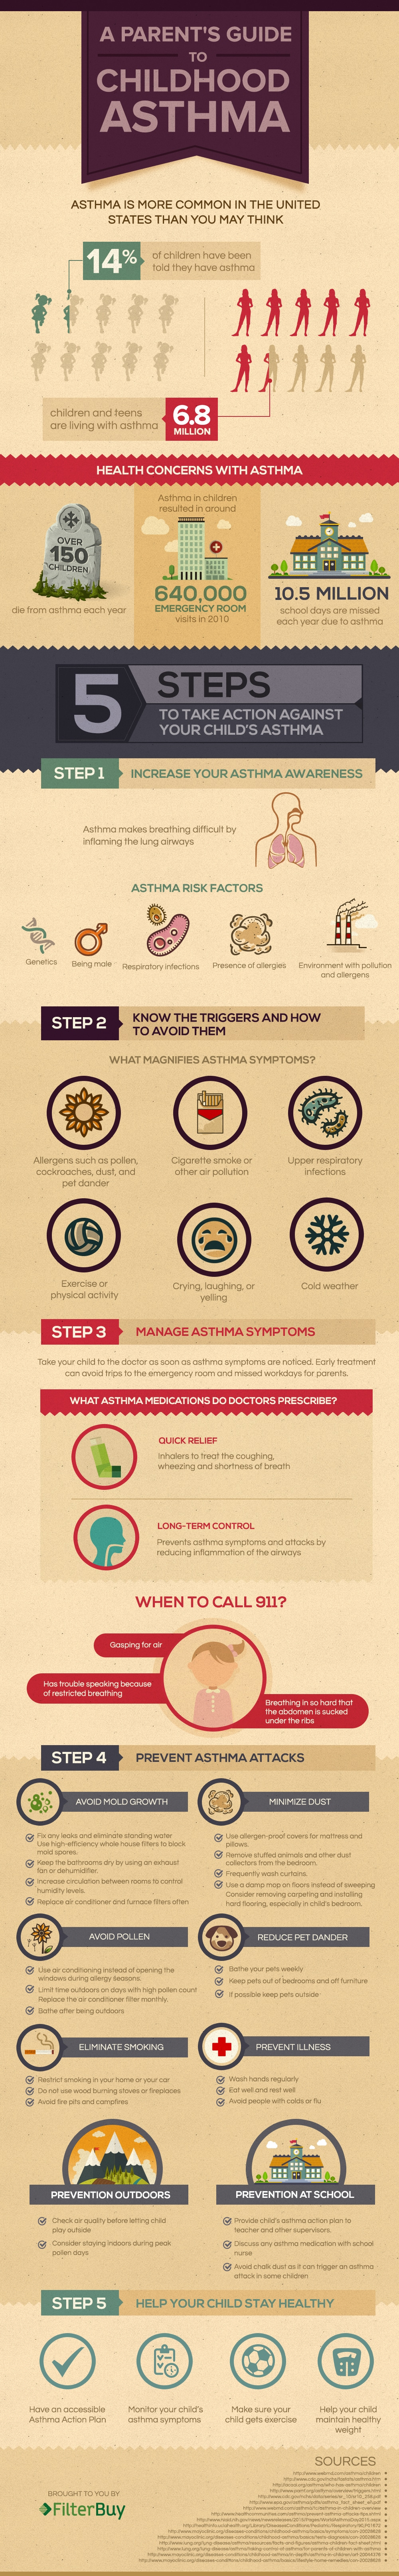 A parents guide to childhood asthma @thatbaldchick